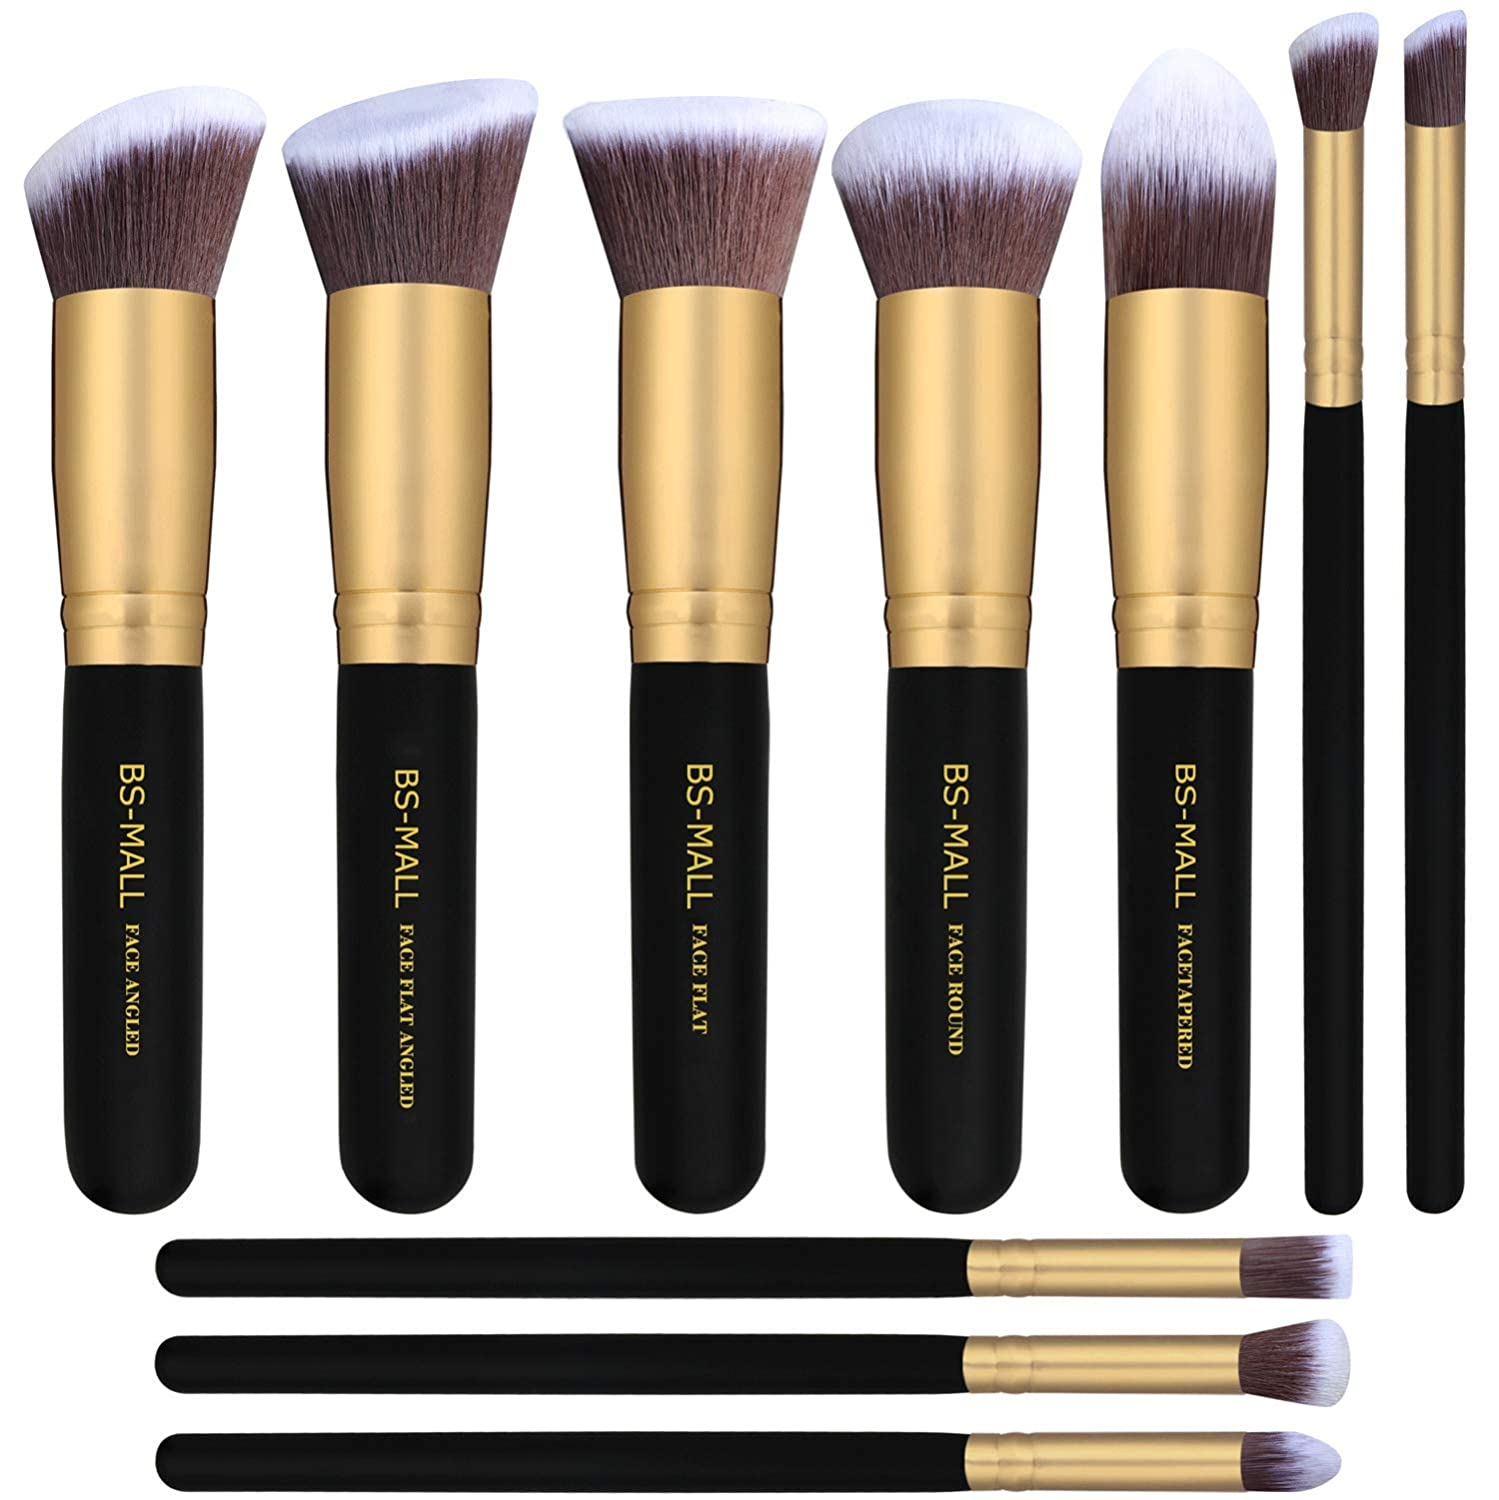 BS-MALL 2016 New Premium Synthetic Kabuki Makeup Brush Set Cosmetics Foundation Blending Blush Eyeliner Face Powder Brush Makeup Brush Kit (SkyBlue Silver)